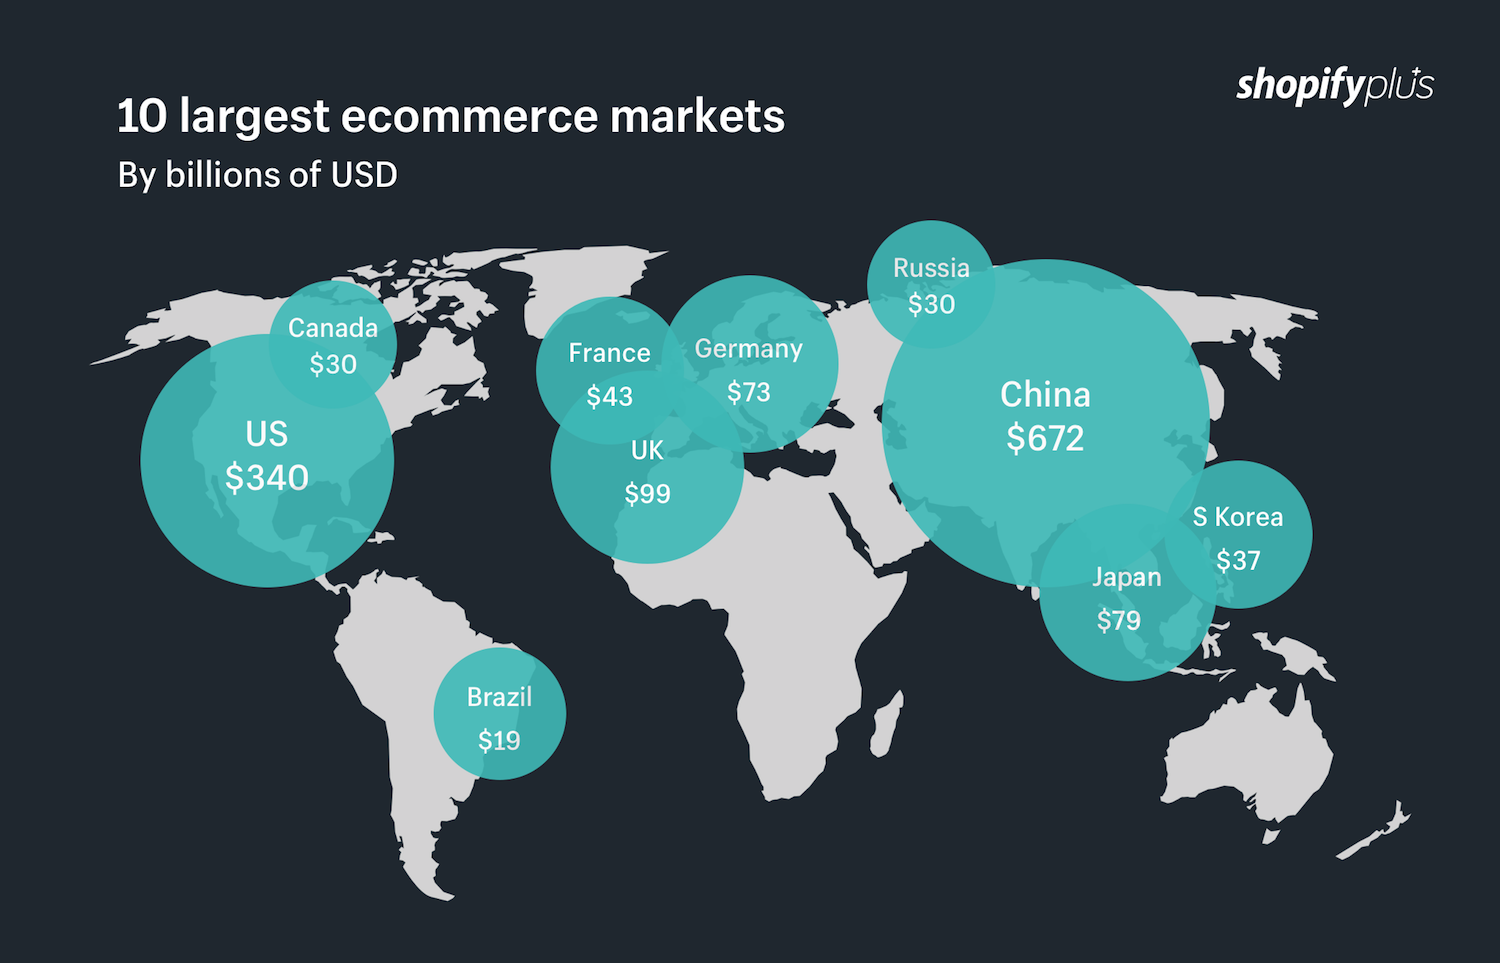 10 largest ecommerce markets in the world by billions of USD